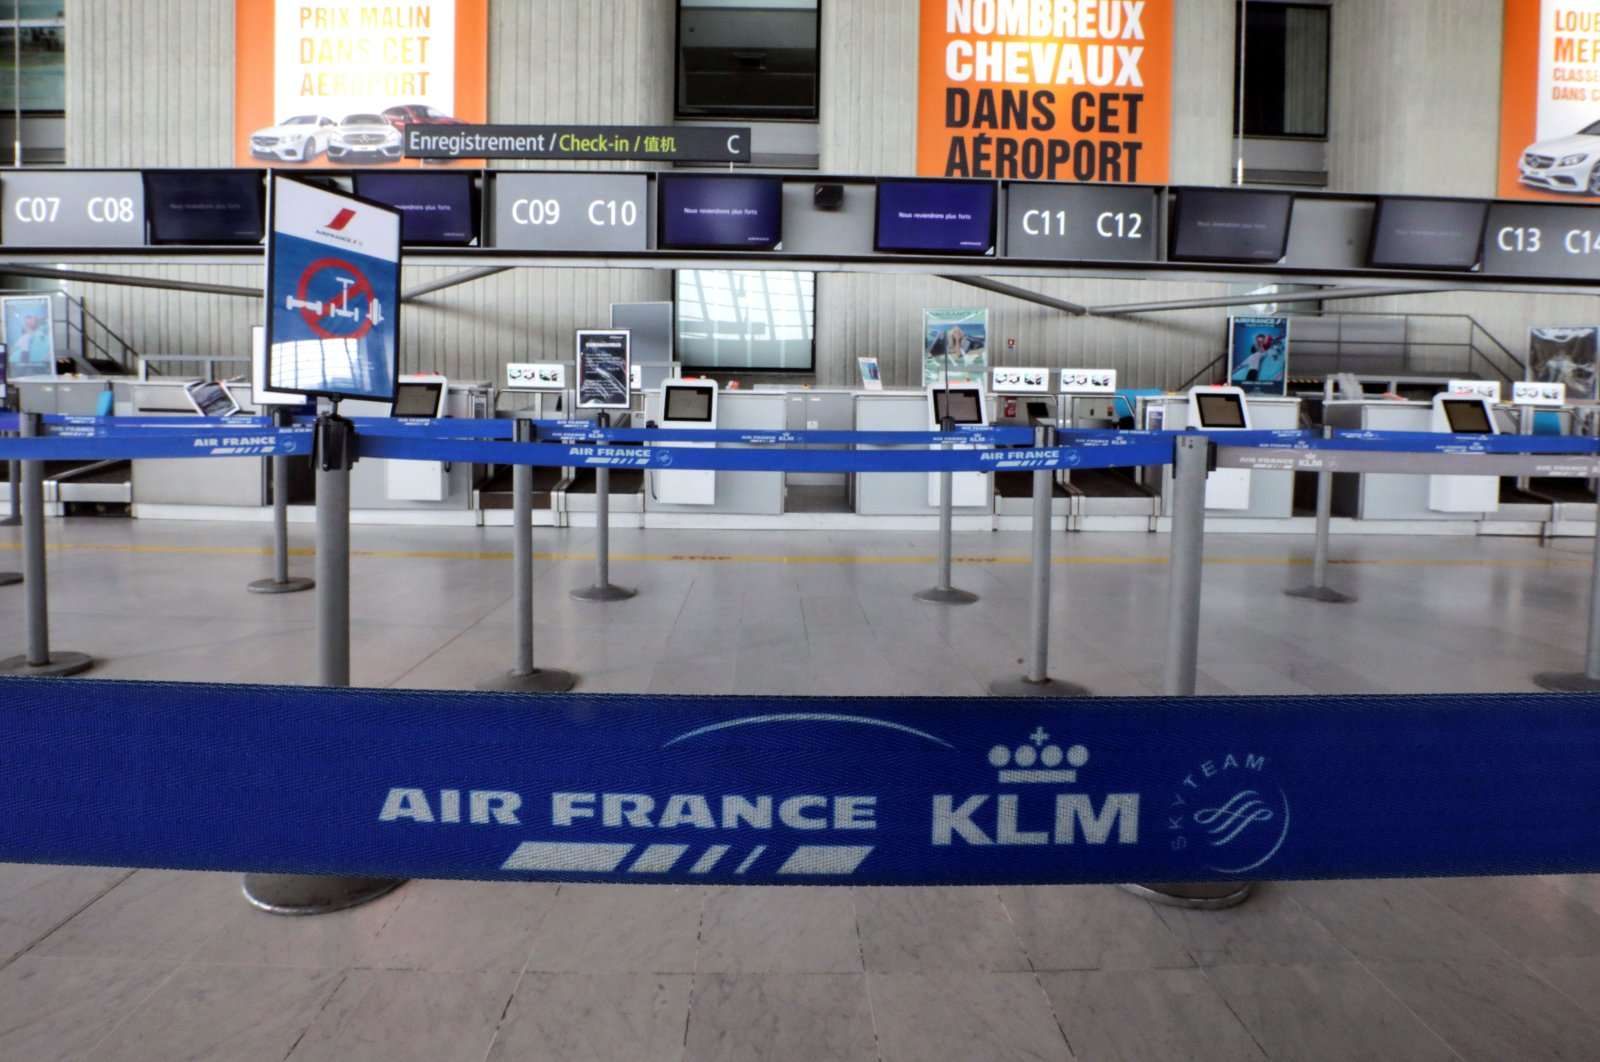 A view shows a deserted Air France check-in desk at Nice international airport, as a lockdown is imposed to slow the rate of the coronavirus disease (COVID-19), in Nice, France, April 13, 2020. (Reuters Photo)